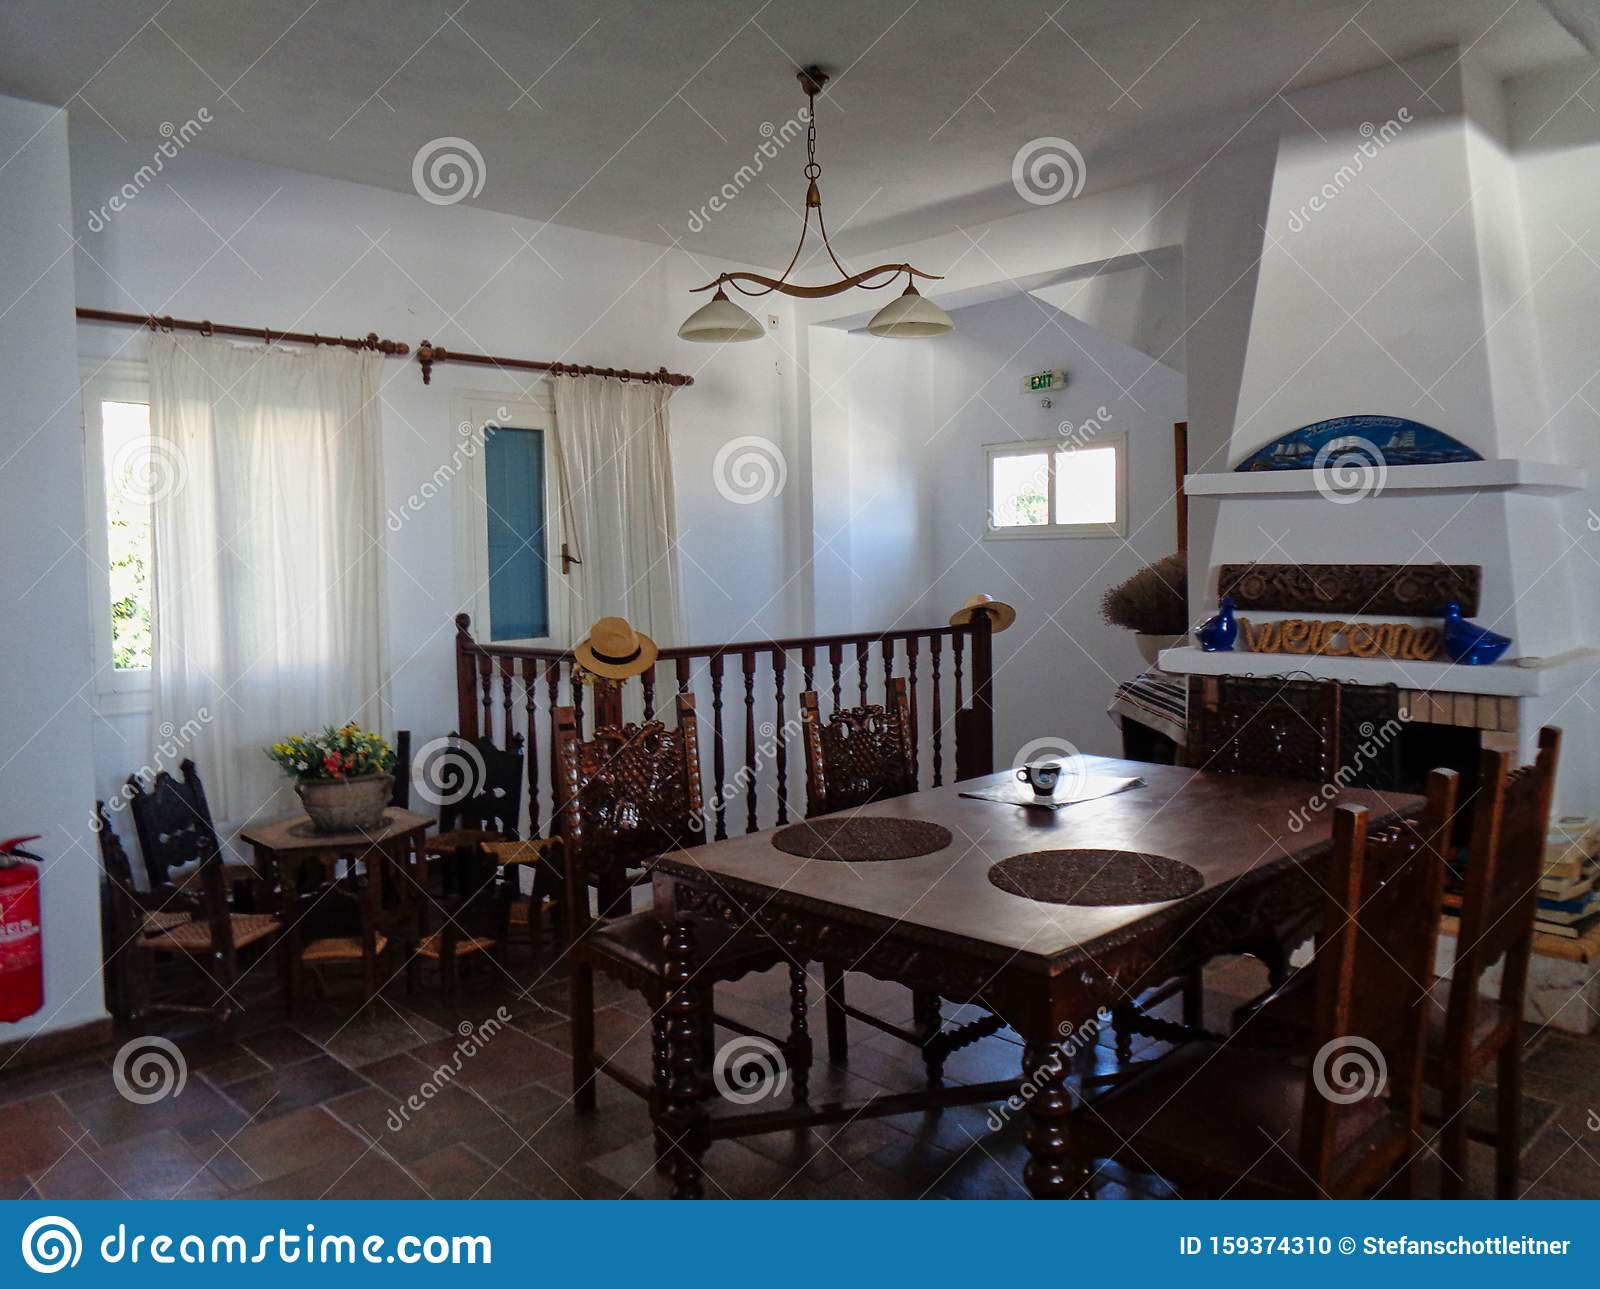 A Small House In Greece Stock Photo Image Of Dining 159374310